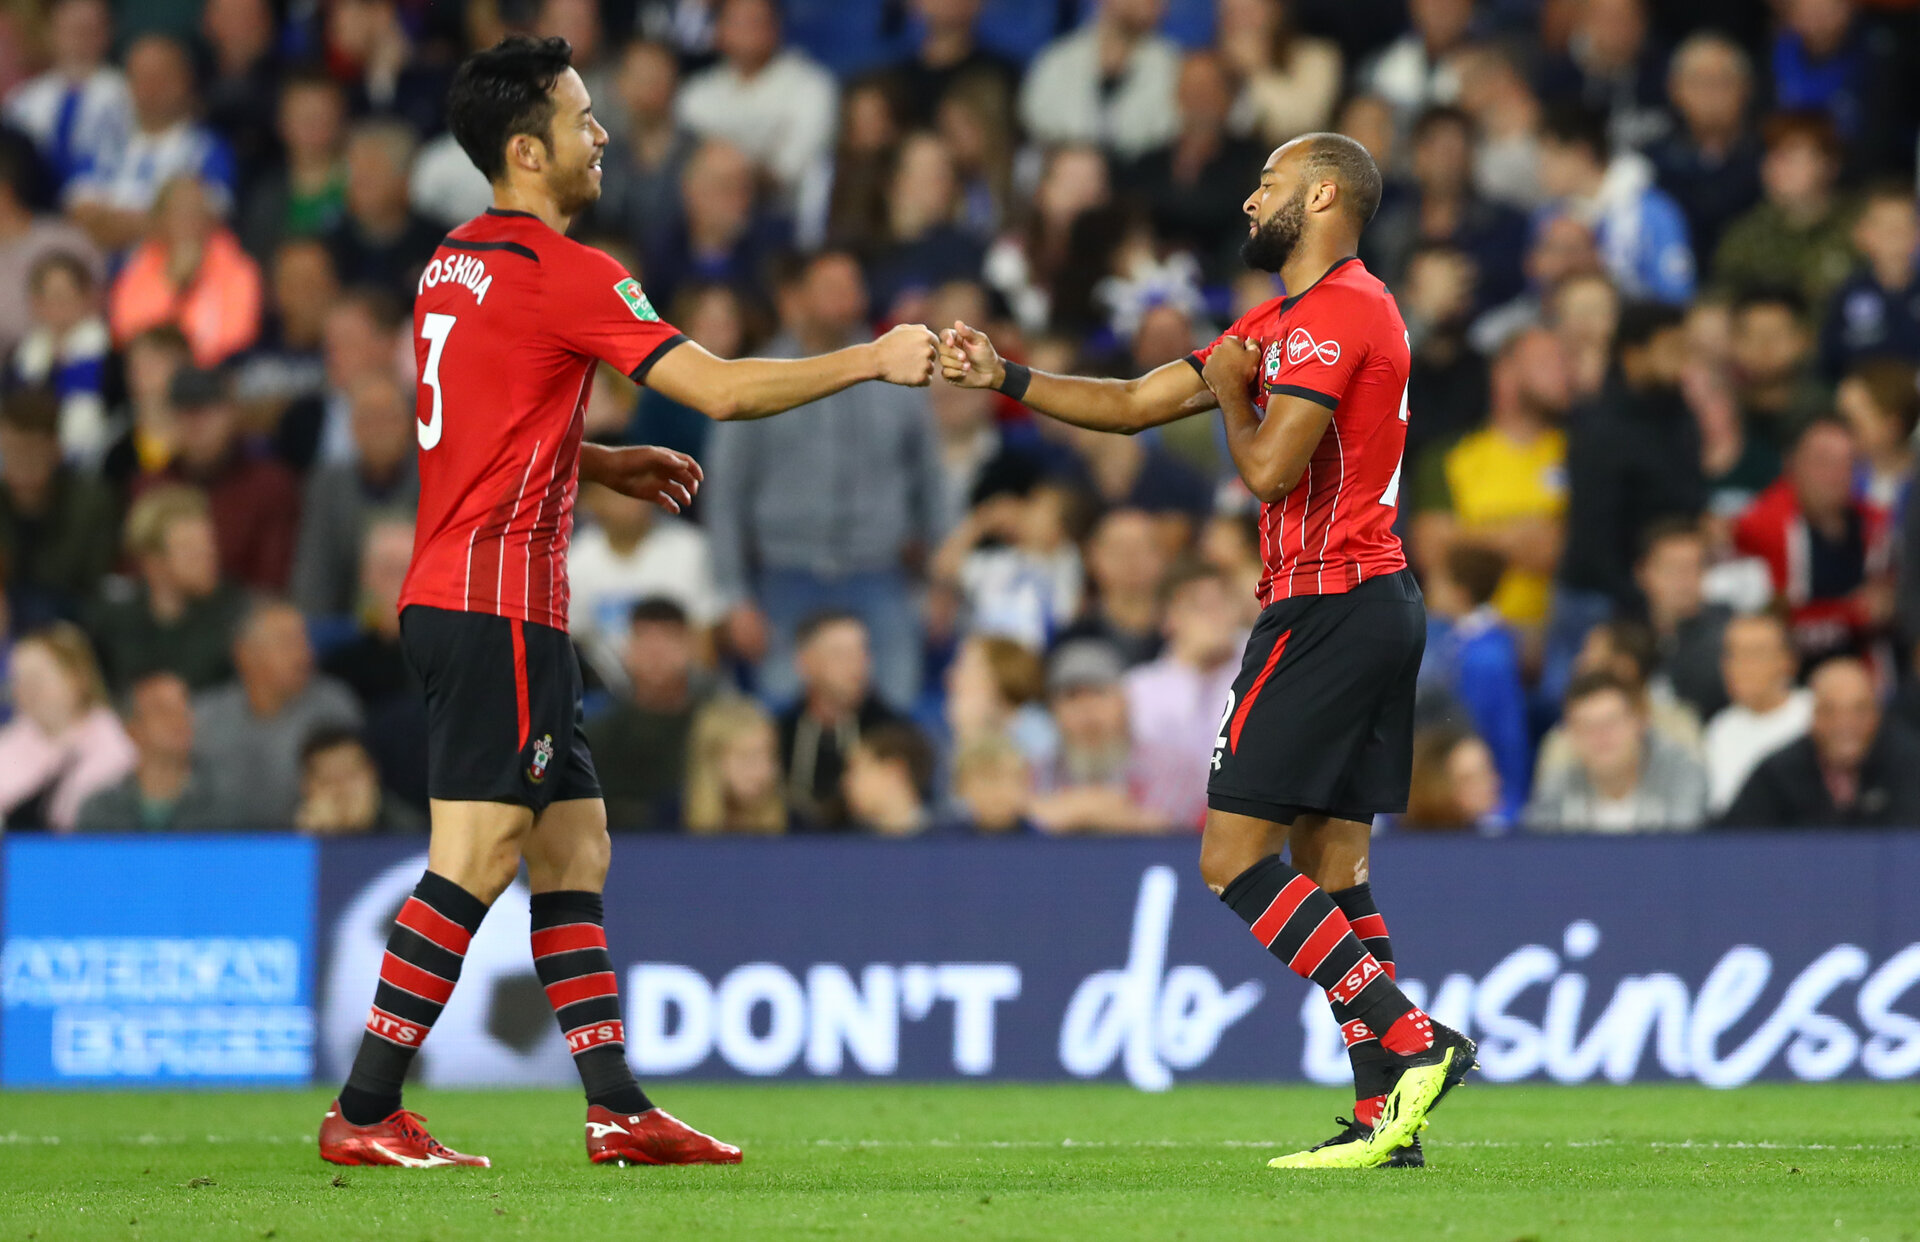 BRIGHTON, ENGLAND - AUGUST 28: Maya Yoshida(L) and Nathan Redmond of Southampton during the Carabao Cup Second Round match between Brighton & Hove Albion and Southampton at American Express Community Stadium on August 28, 2018 in Brighton, England. (Photo by Matt Watson/Southampton FC via Getty Images)